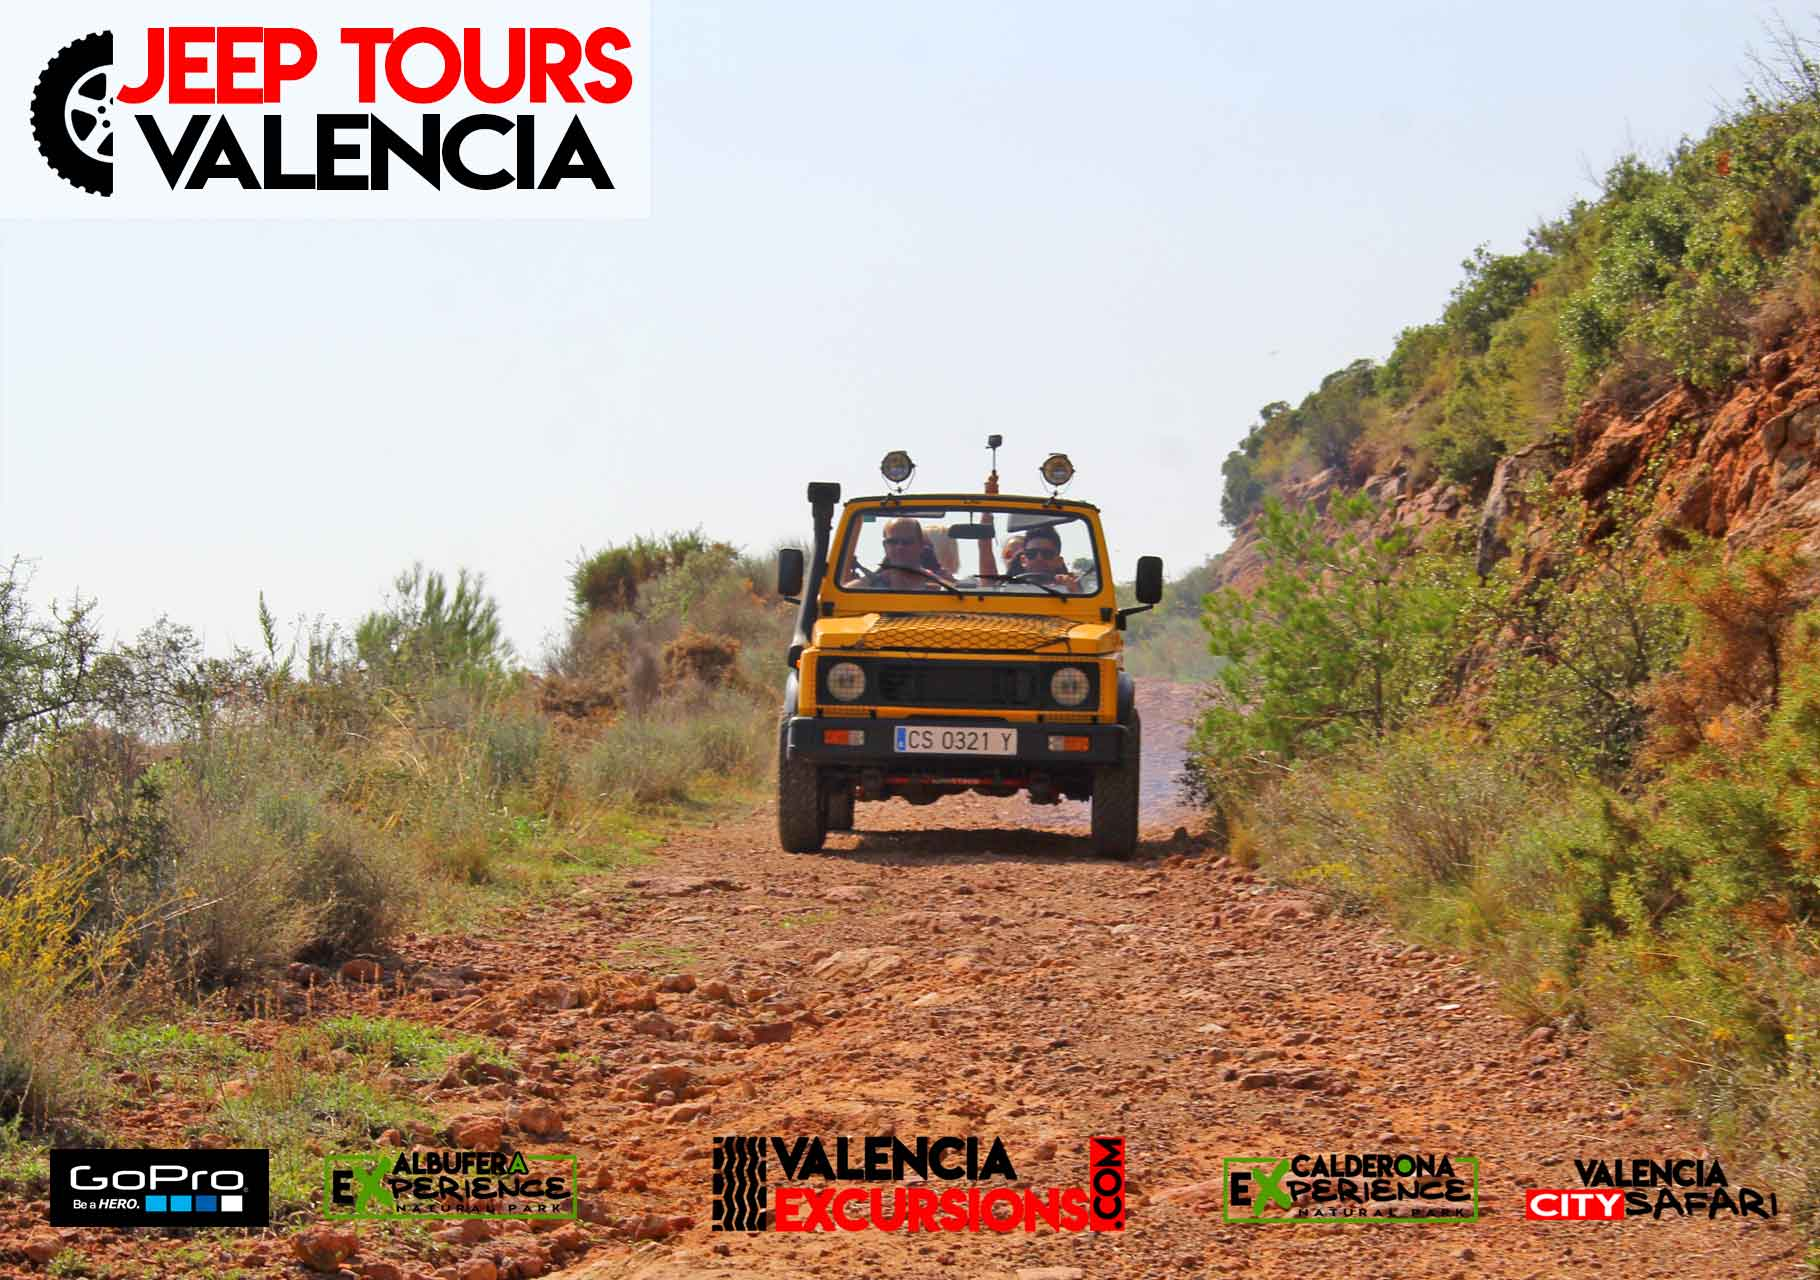 Jeep Tour in Valencia. Fahre selbst!